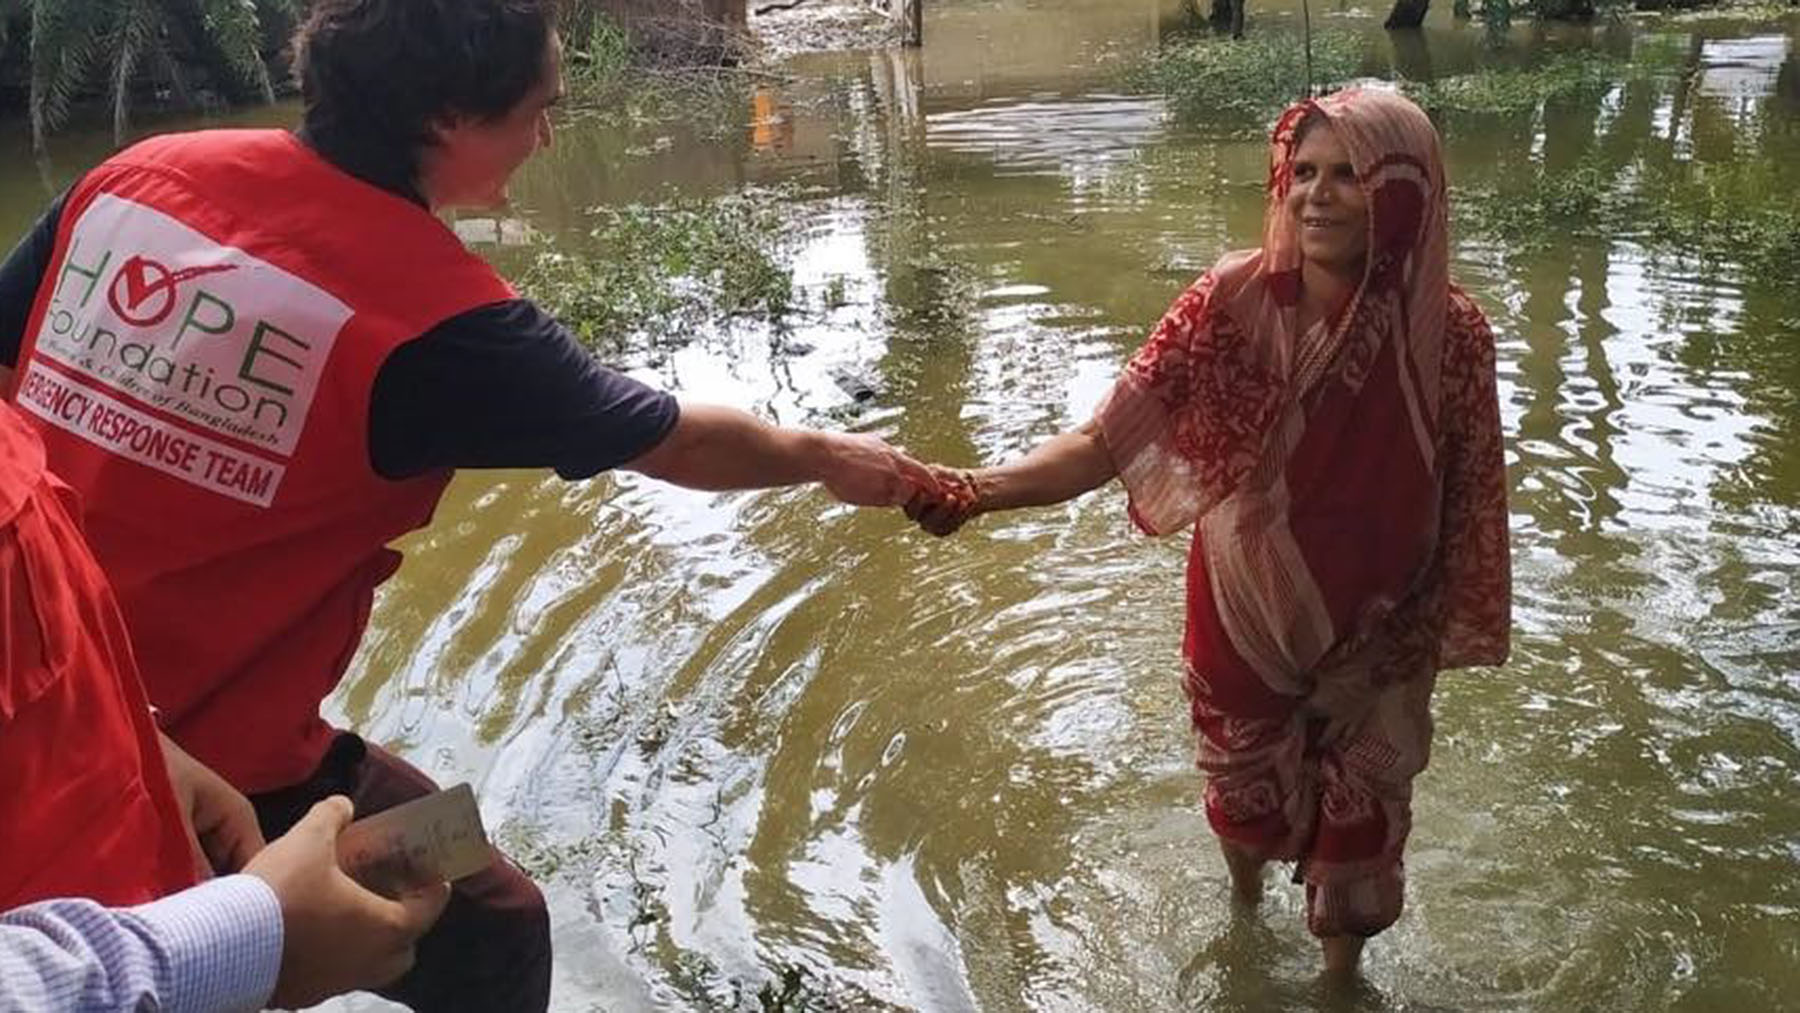 An emergency response worker from HOPE Hospital in Cox's Bazar, Bangladesh, helps a woman out of the water. Direct Relief is supporting the hospital with essential medicines, and will continue shipping requested medical aid to facilities responding to the flooding. (Photo courtesy of HOPE Foundation for Women and Children)